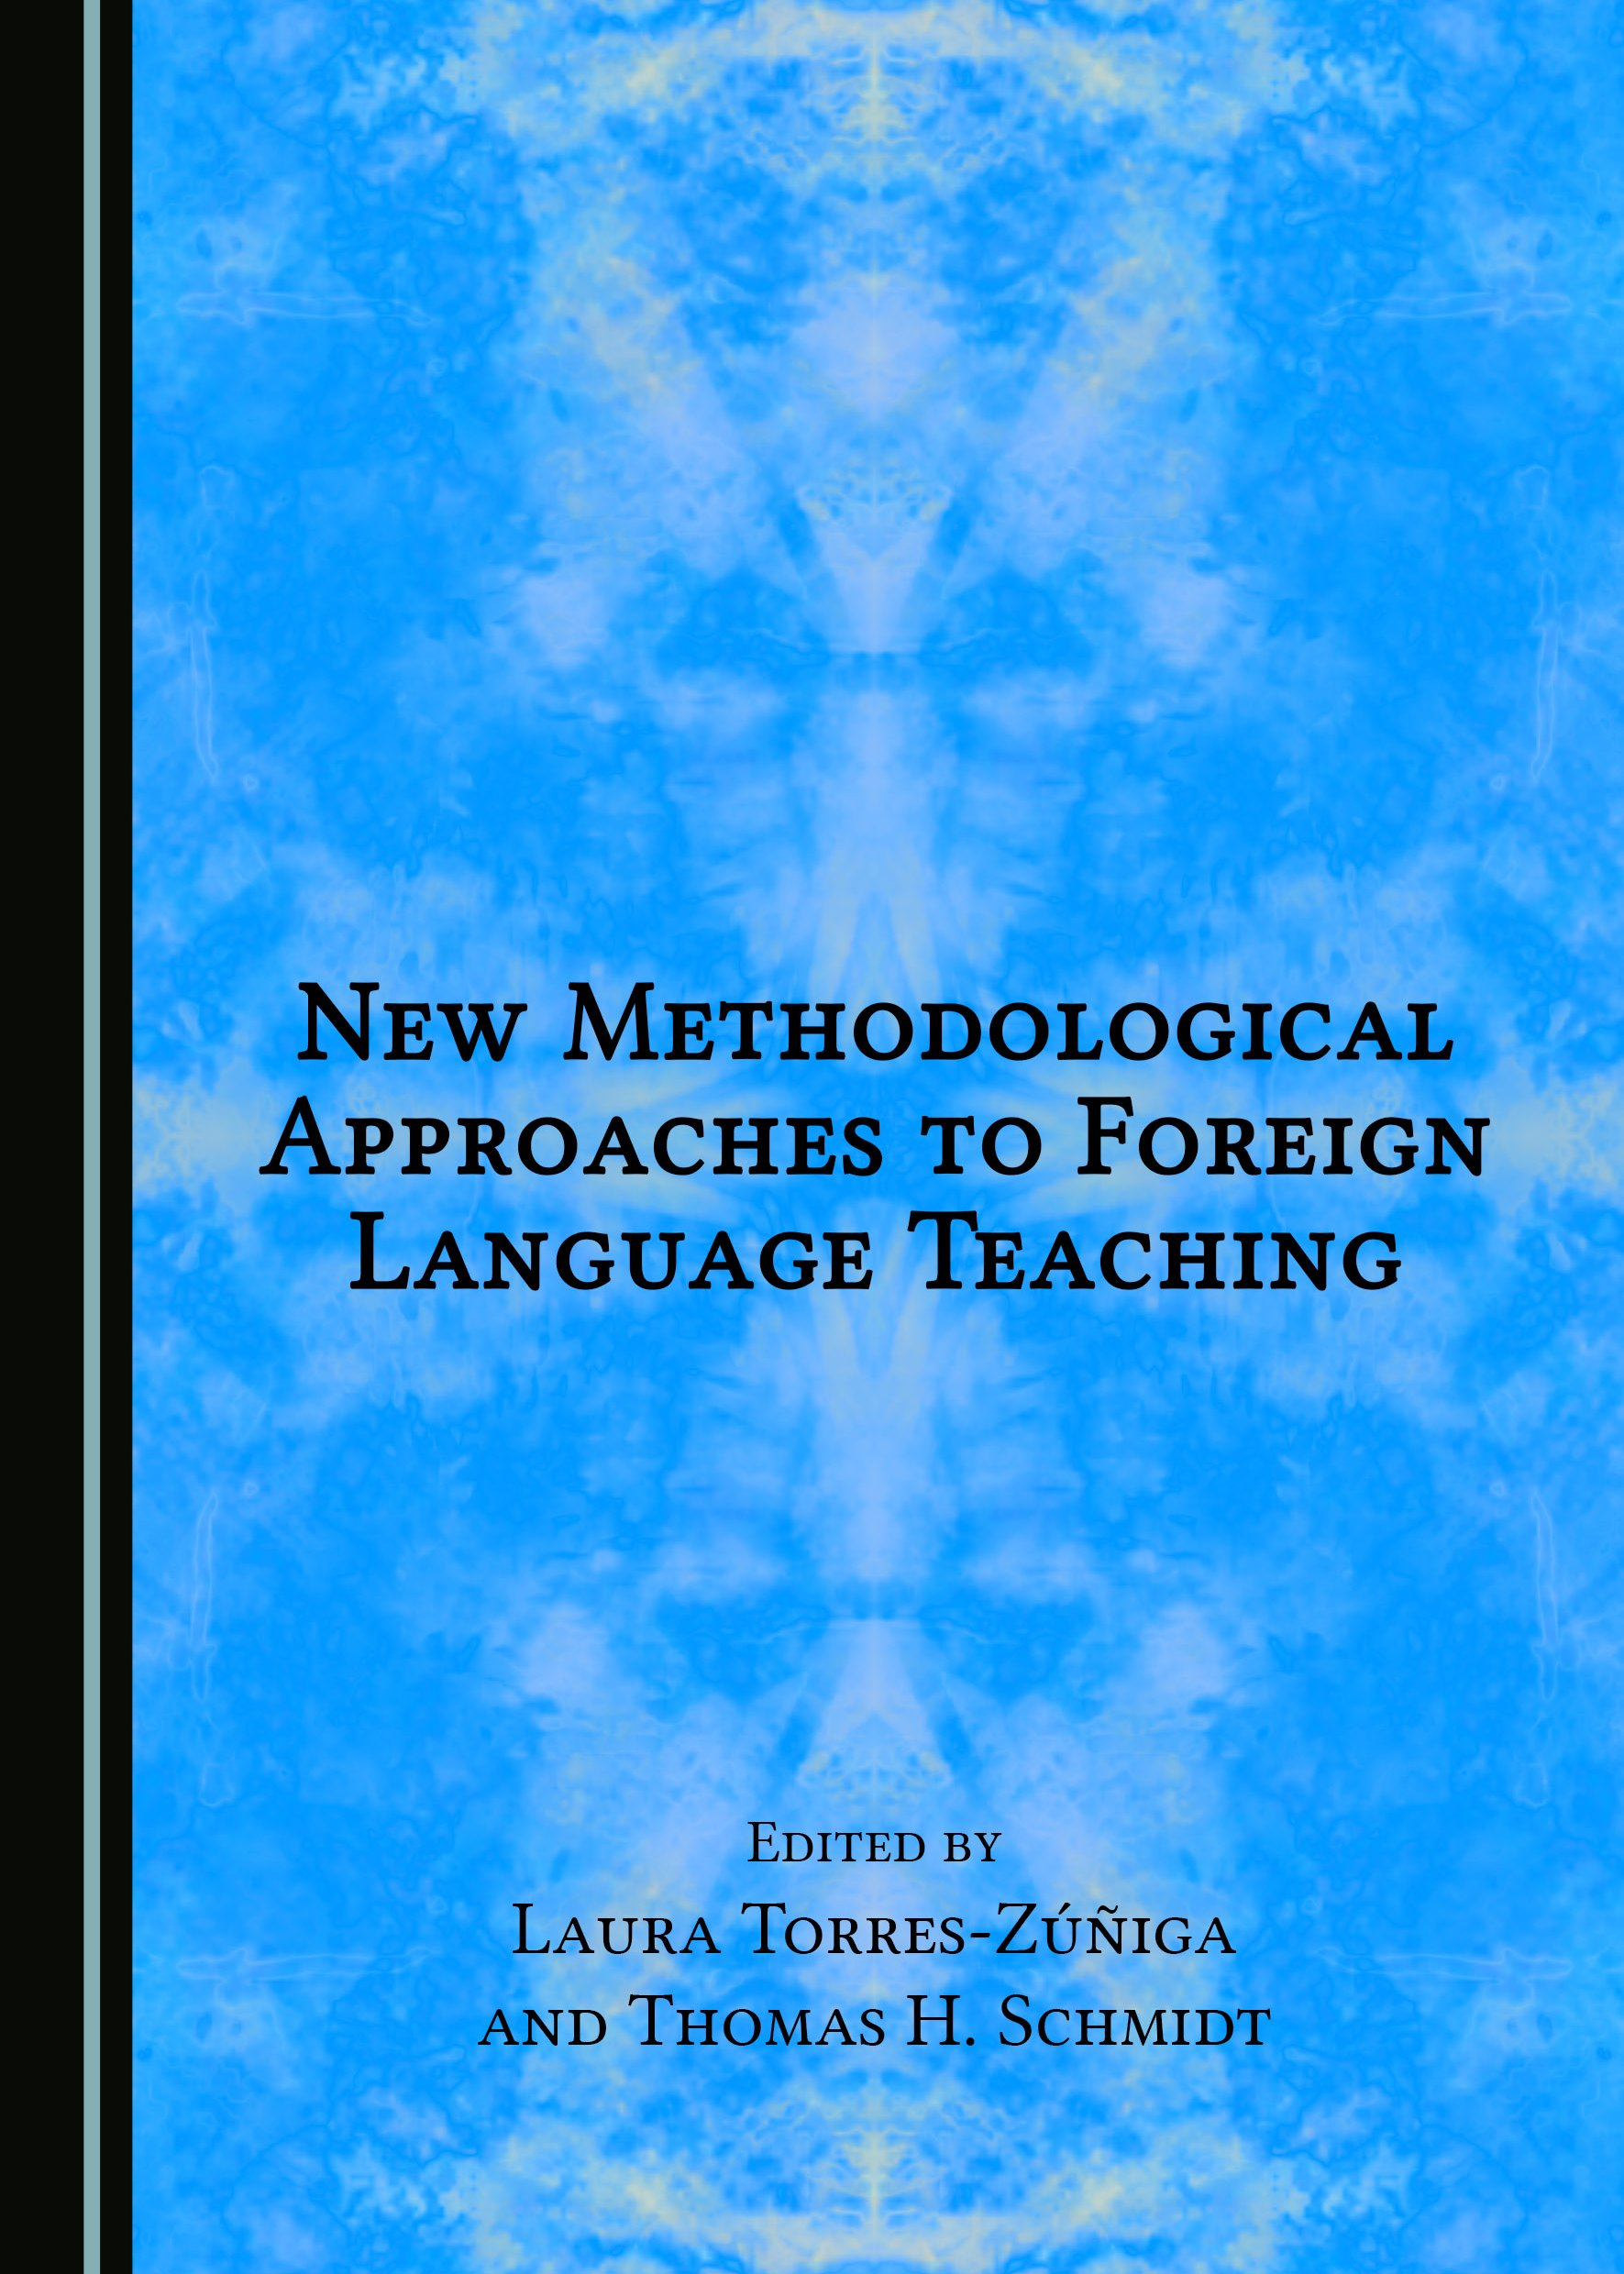 New Methodological Approaches to Foreign Language Teaching